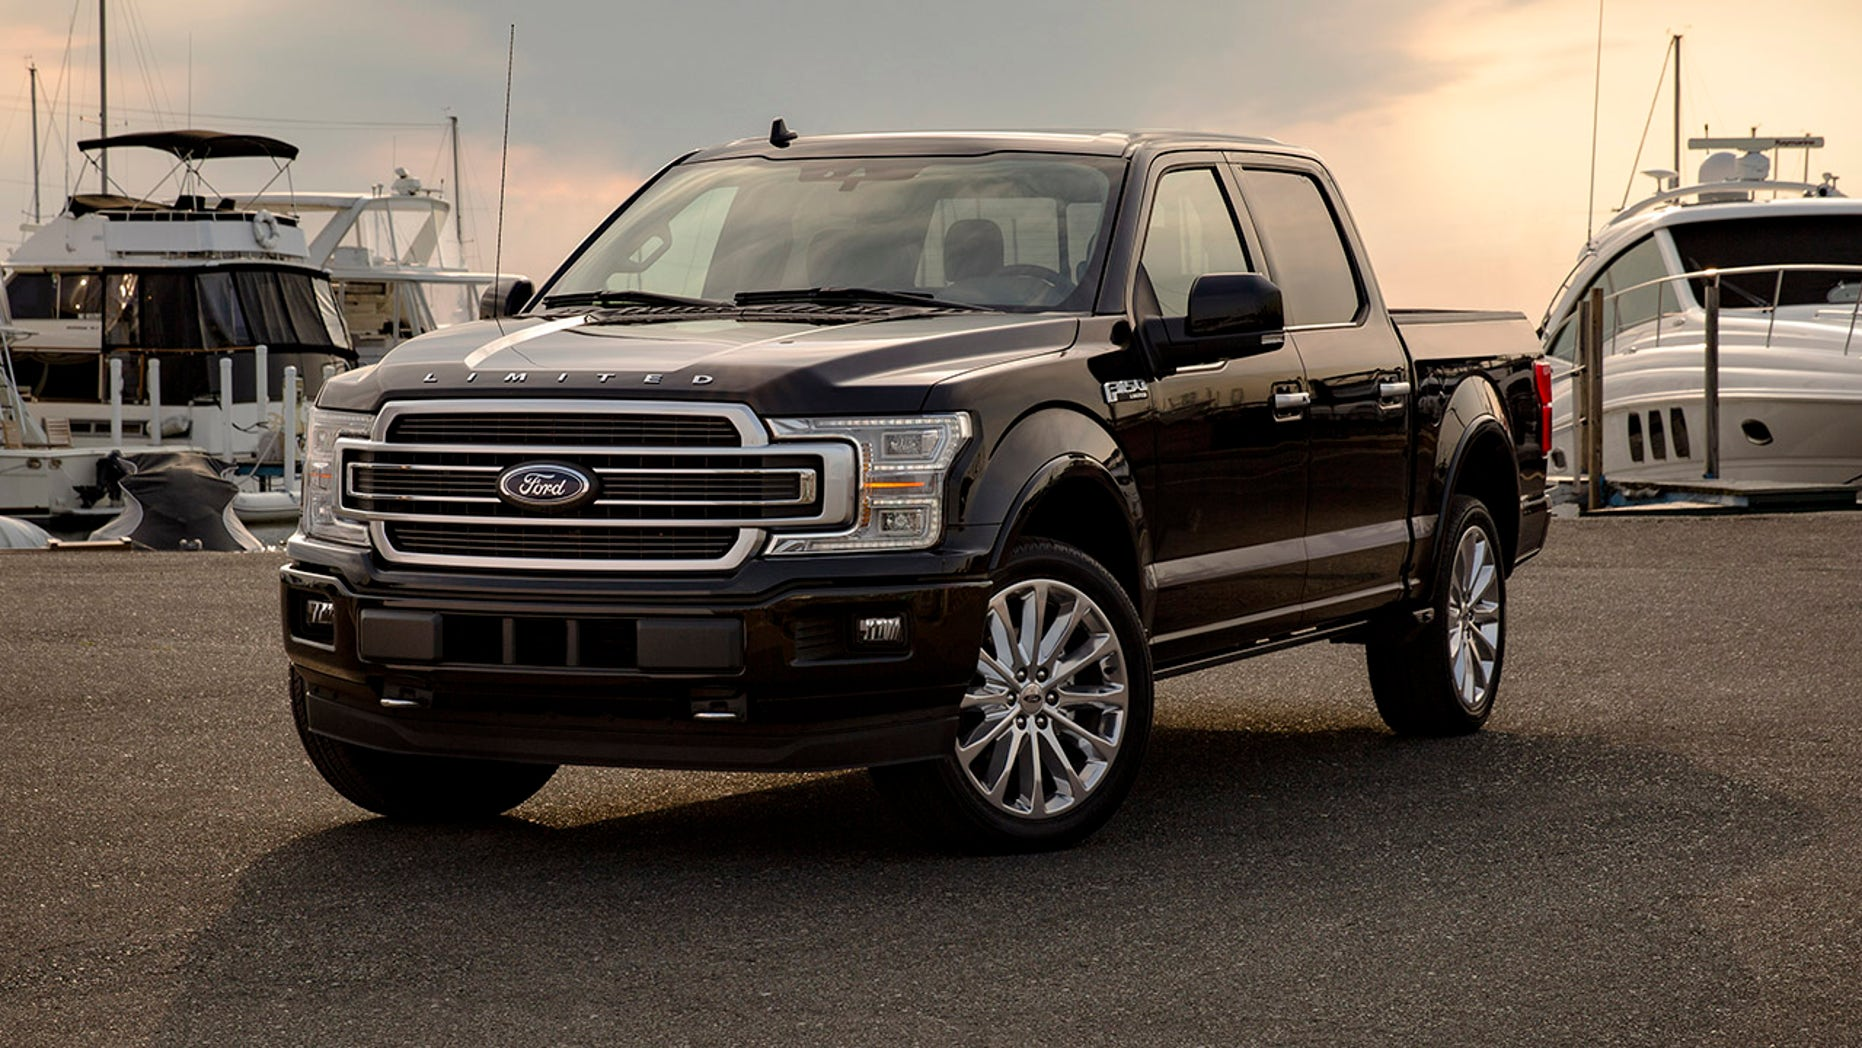 Ford F-150 King Ranch >> Raptor-powered Ford F-150 Limited coming for 2019 | Fox News